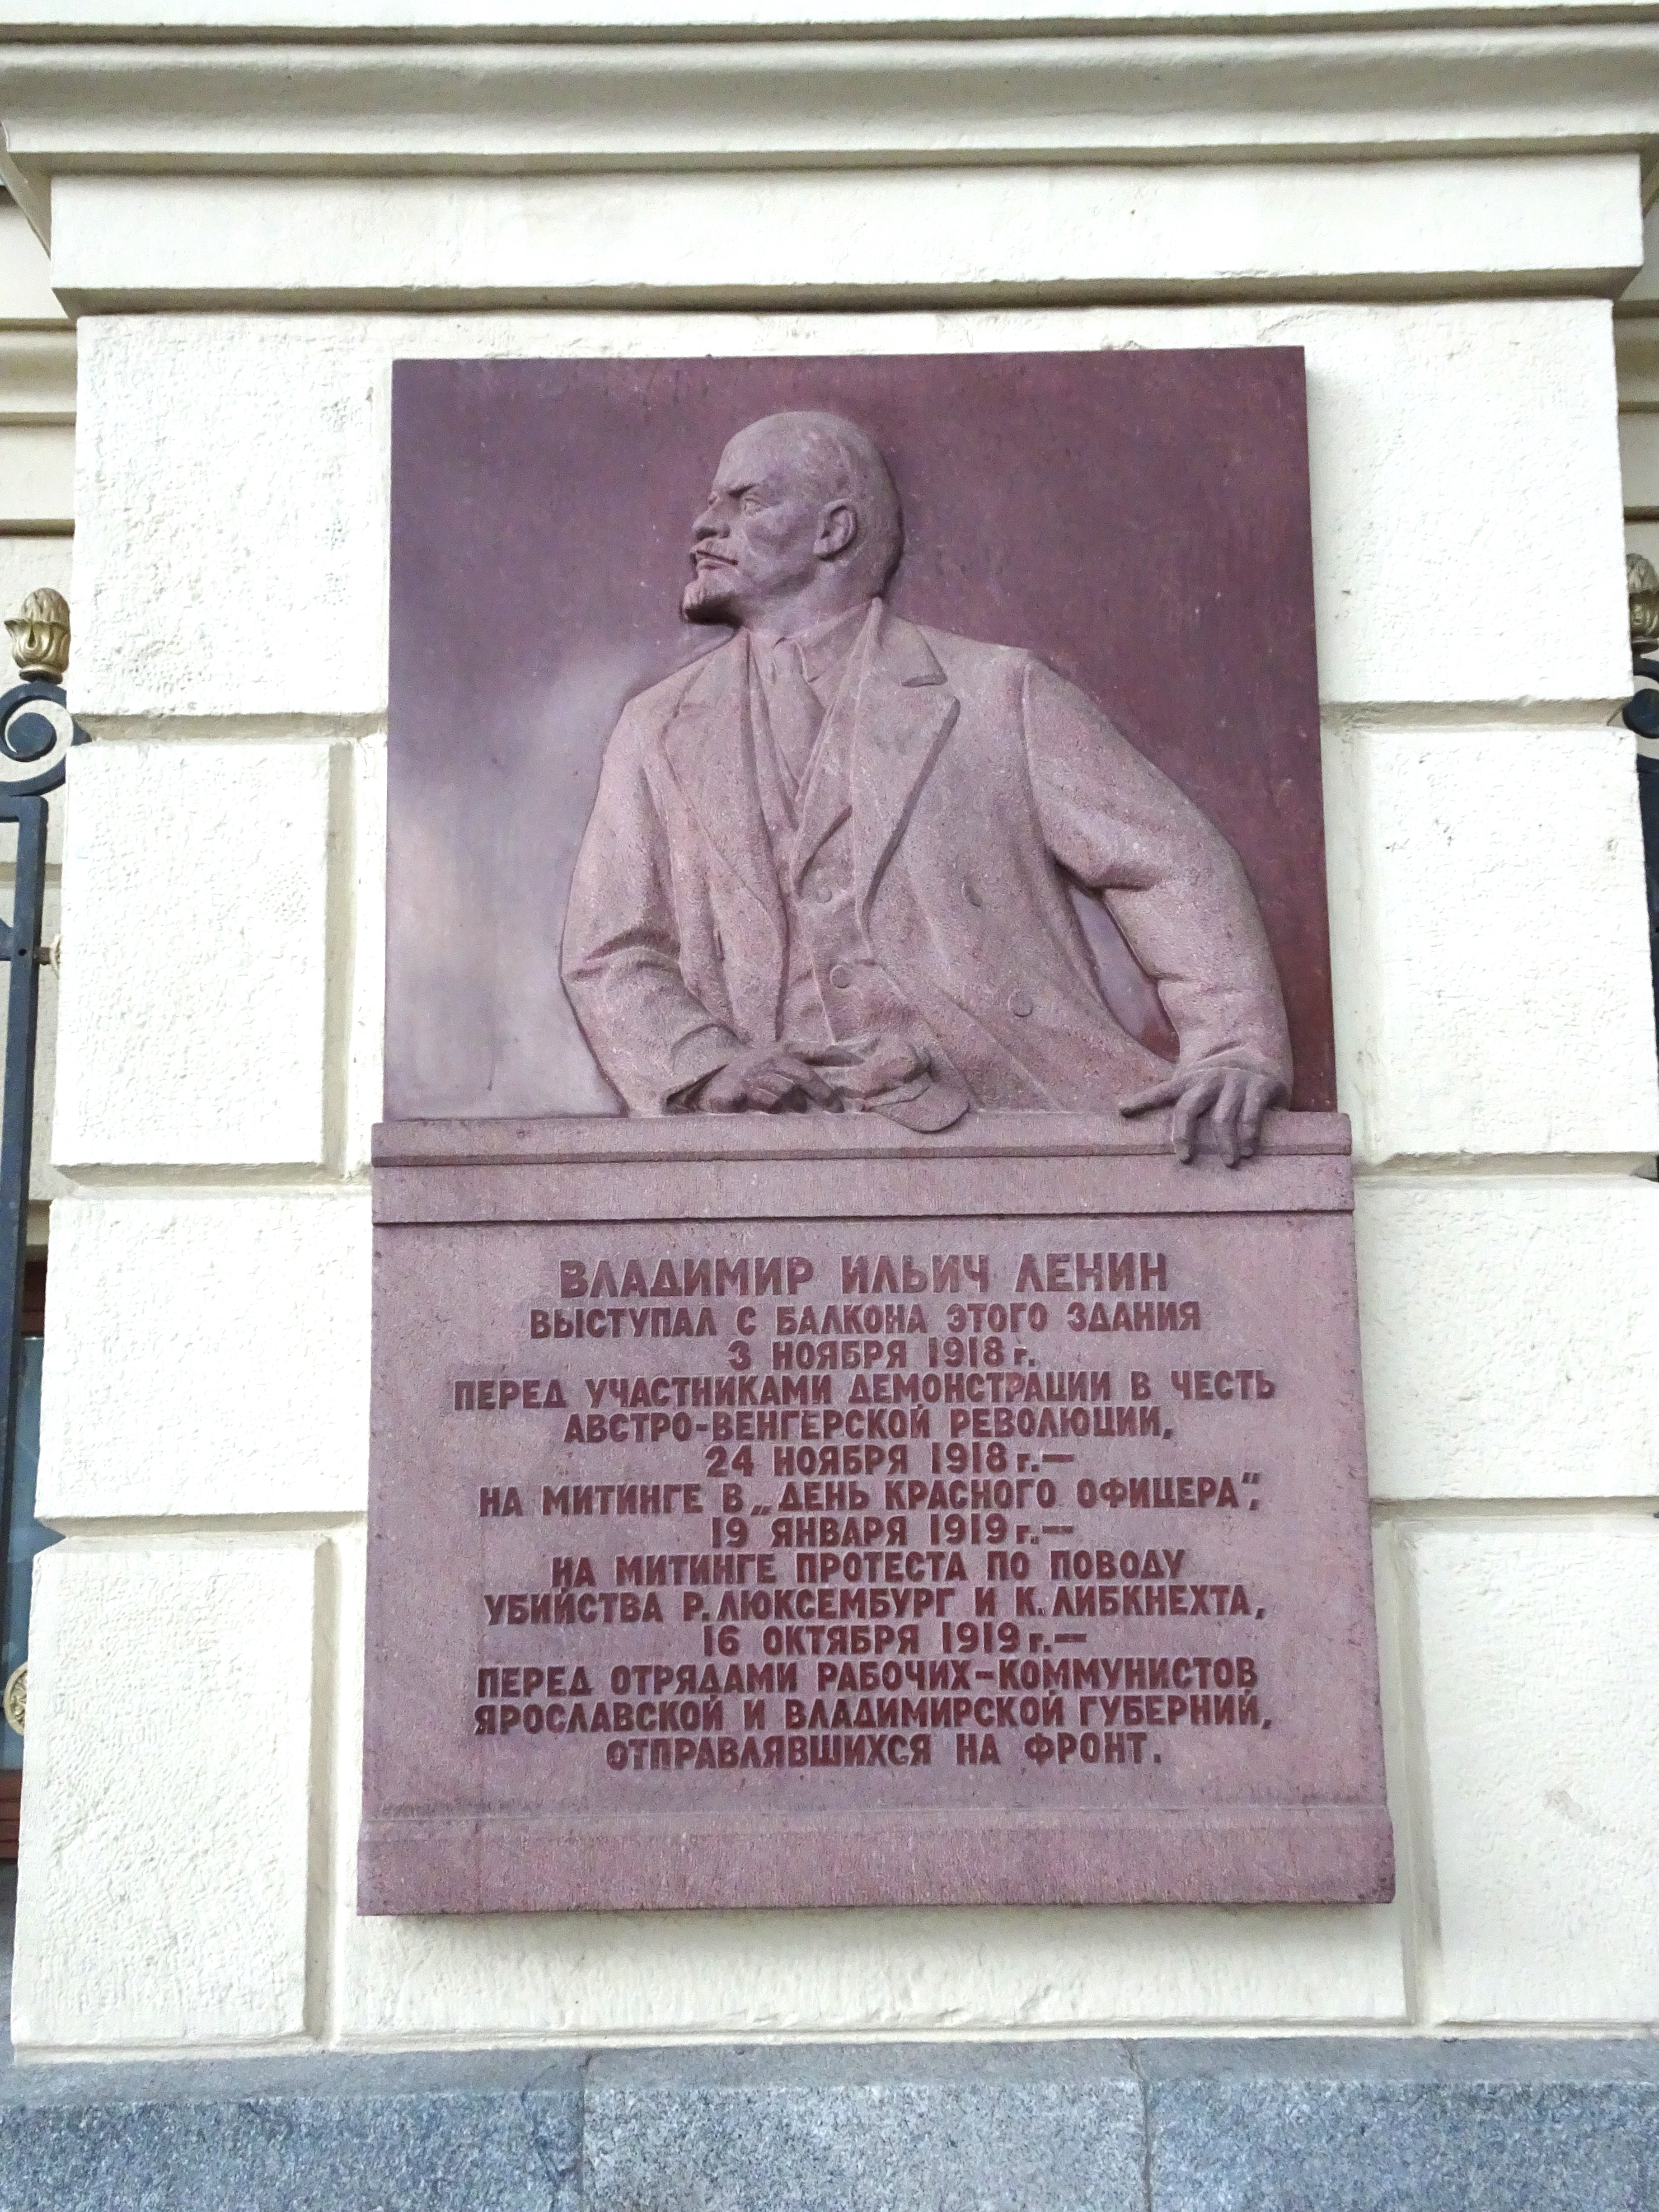 A Lenin plaque in Moscow